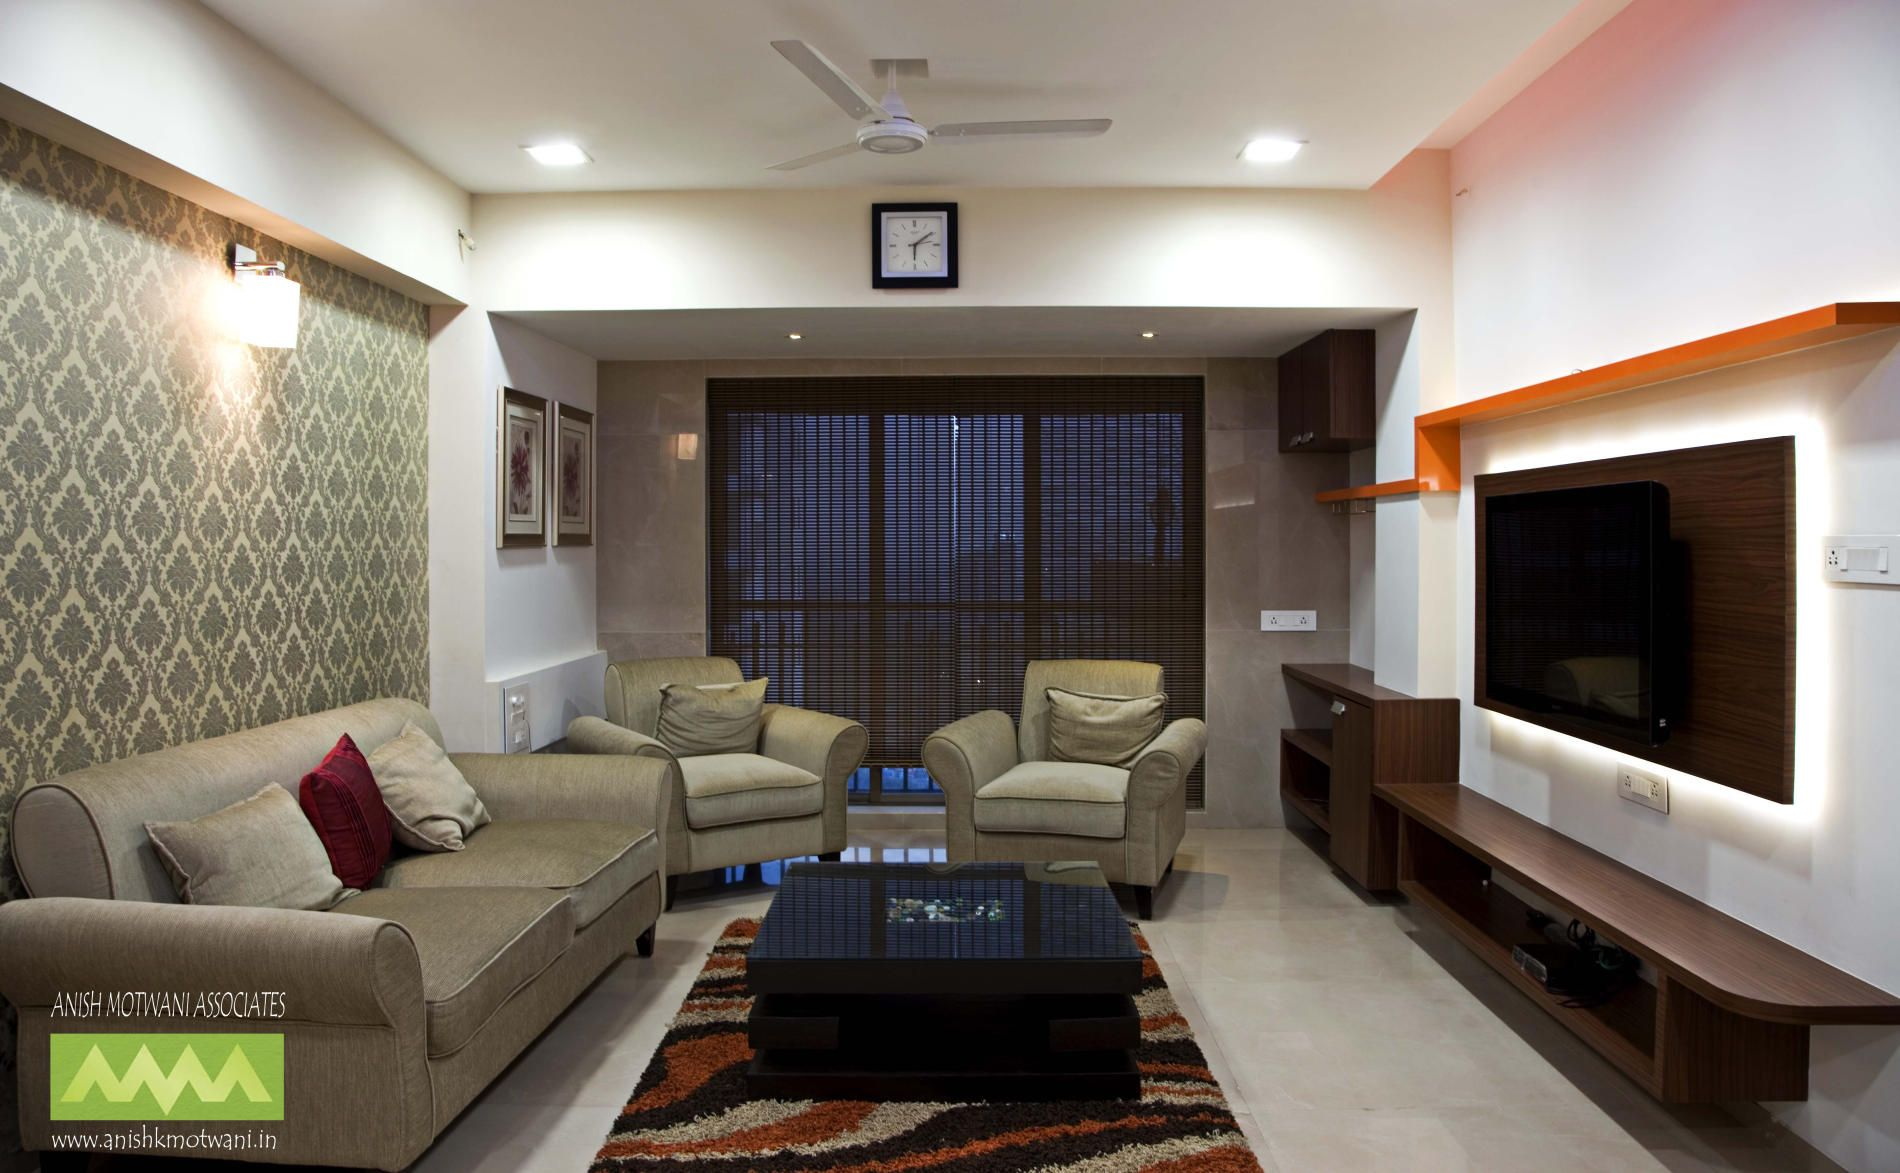 Sofa Designs For Small Living Room India Columns In Ideas Interior Design Pictures Modern Minimalist